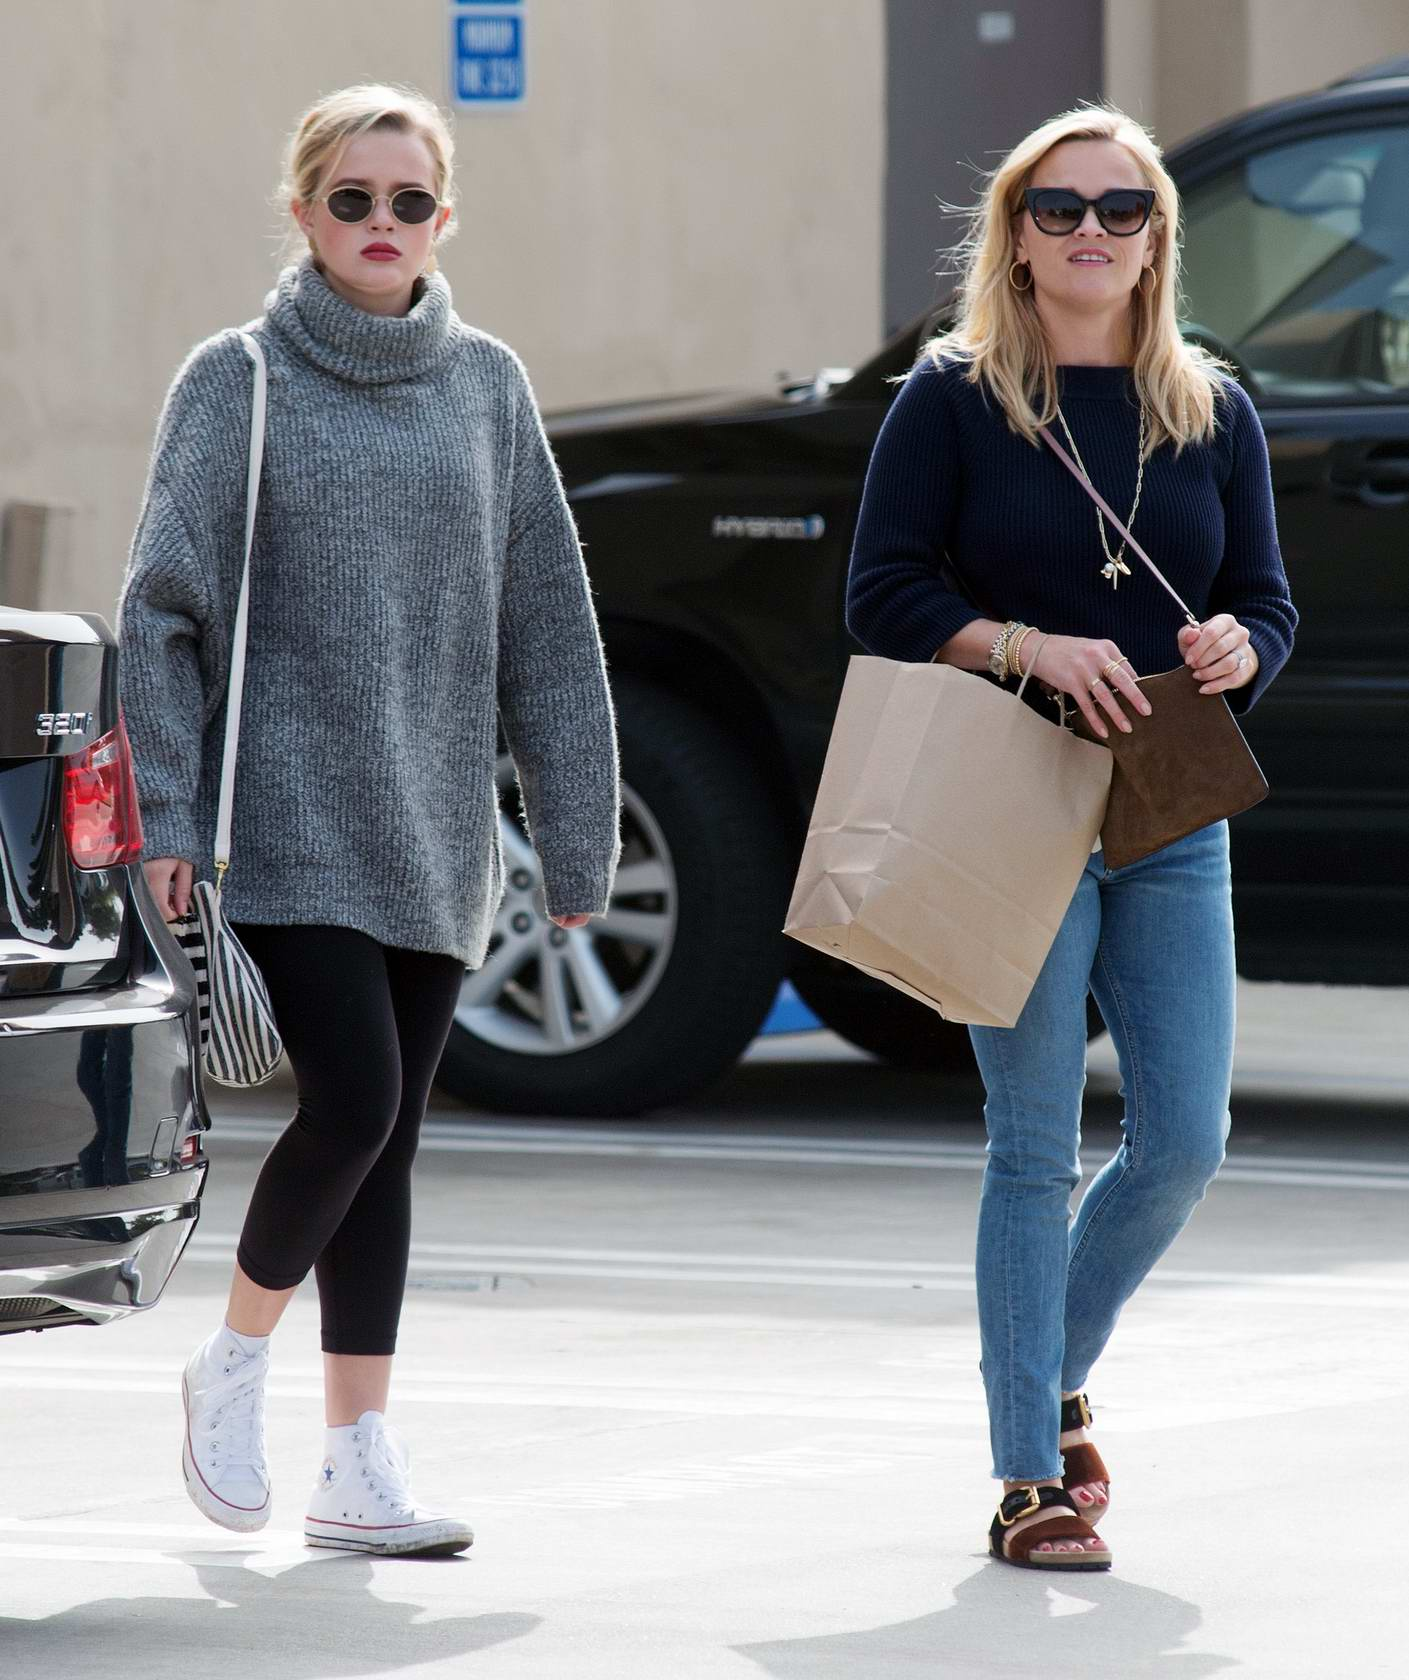 Reese Witherspoon out with daughter Ava Phillippe for some shopping in Los Angeles